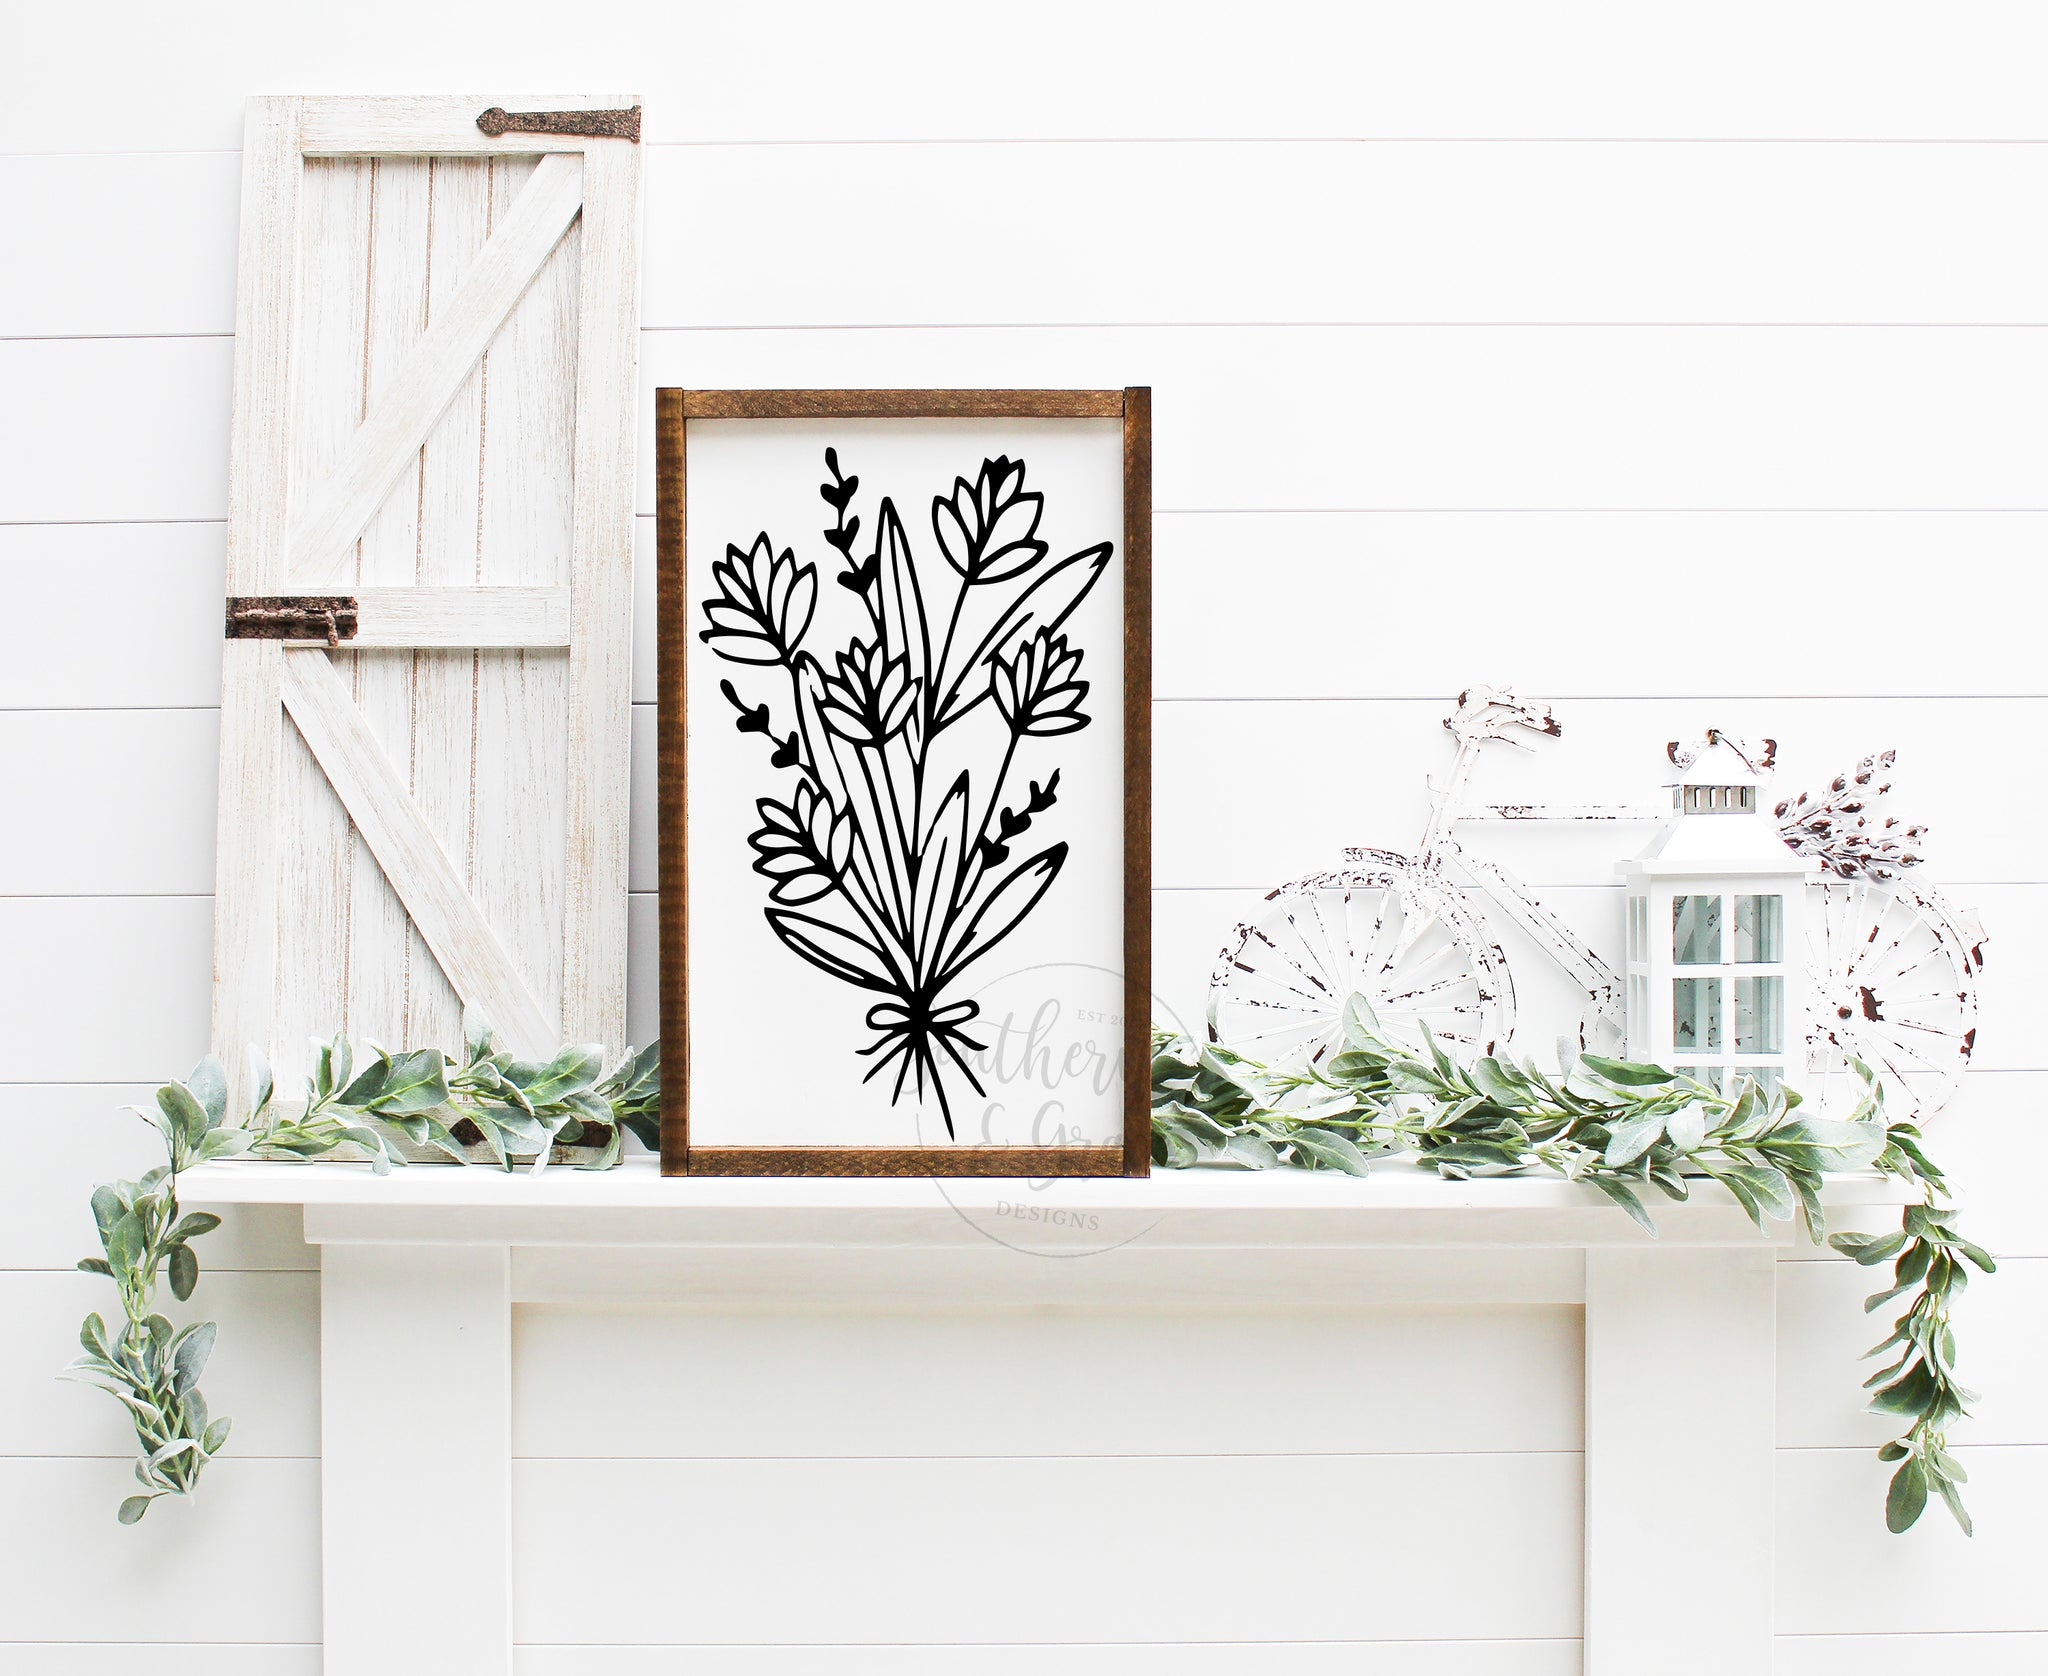 Botanical Framed Wood Sign